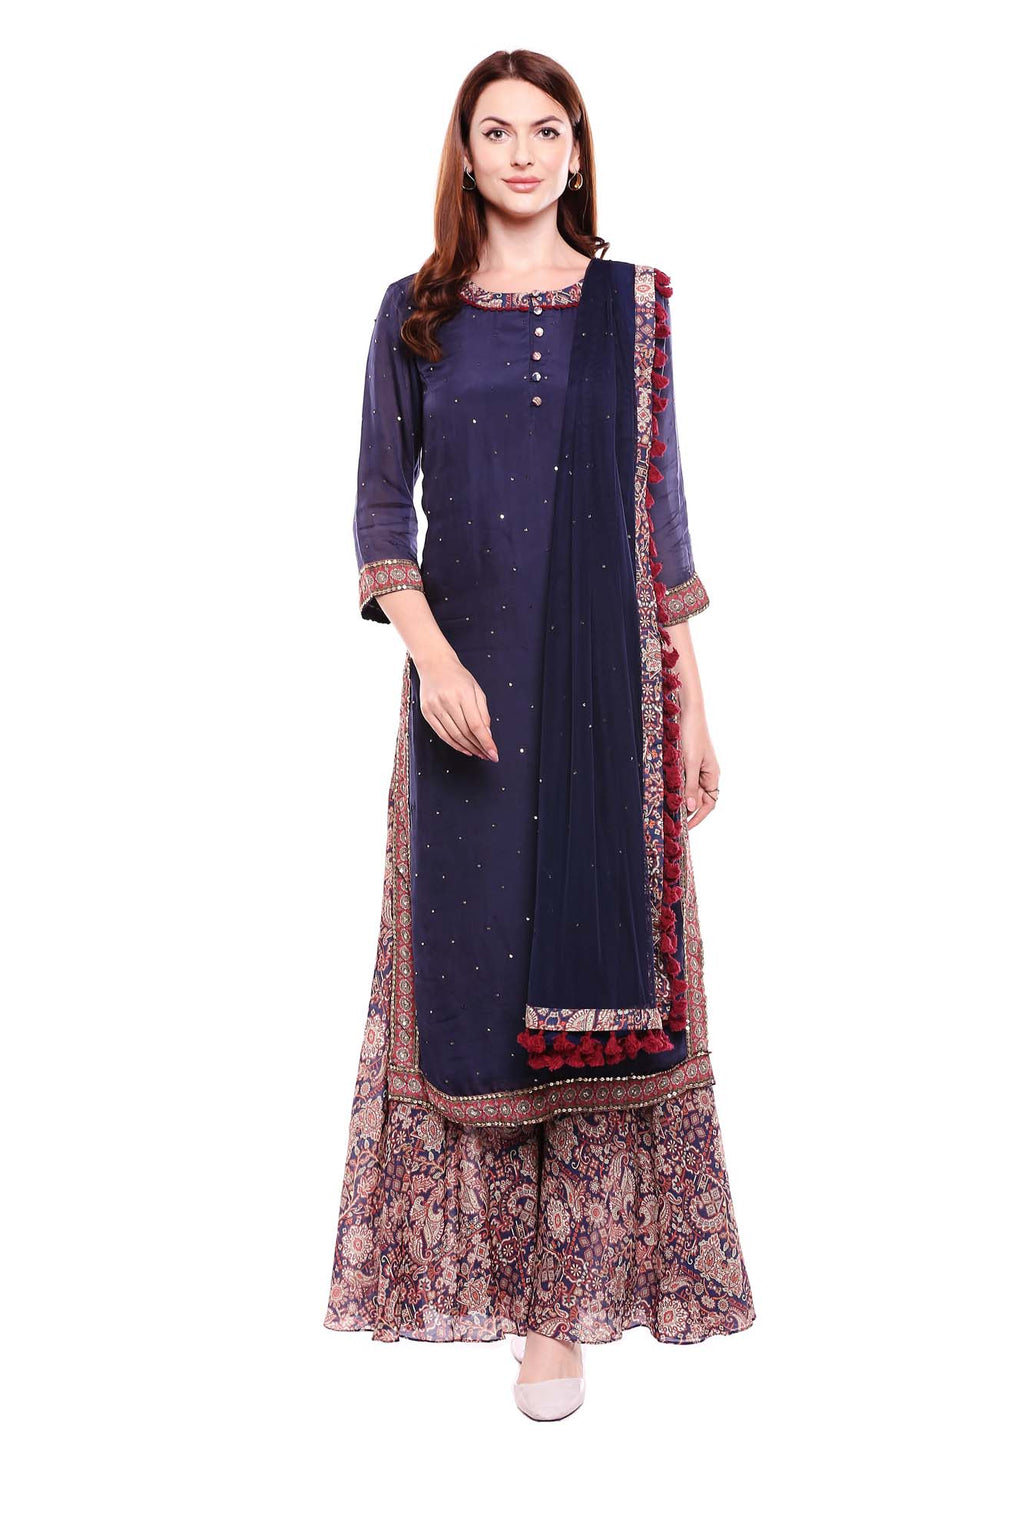 Blue Kurta with Cheeta Print and Side Slits with Pants and Dupatta - Riviera Closet